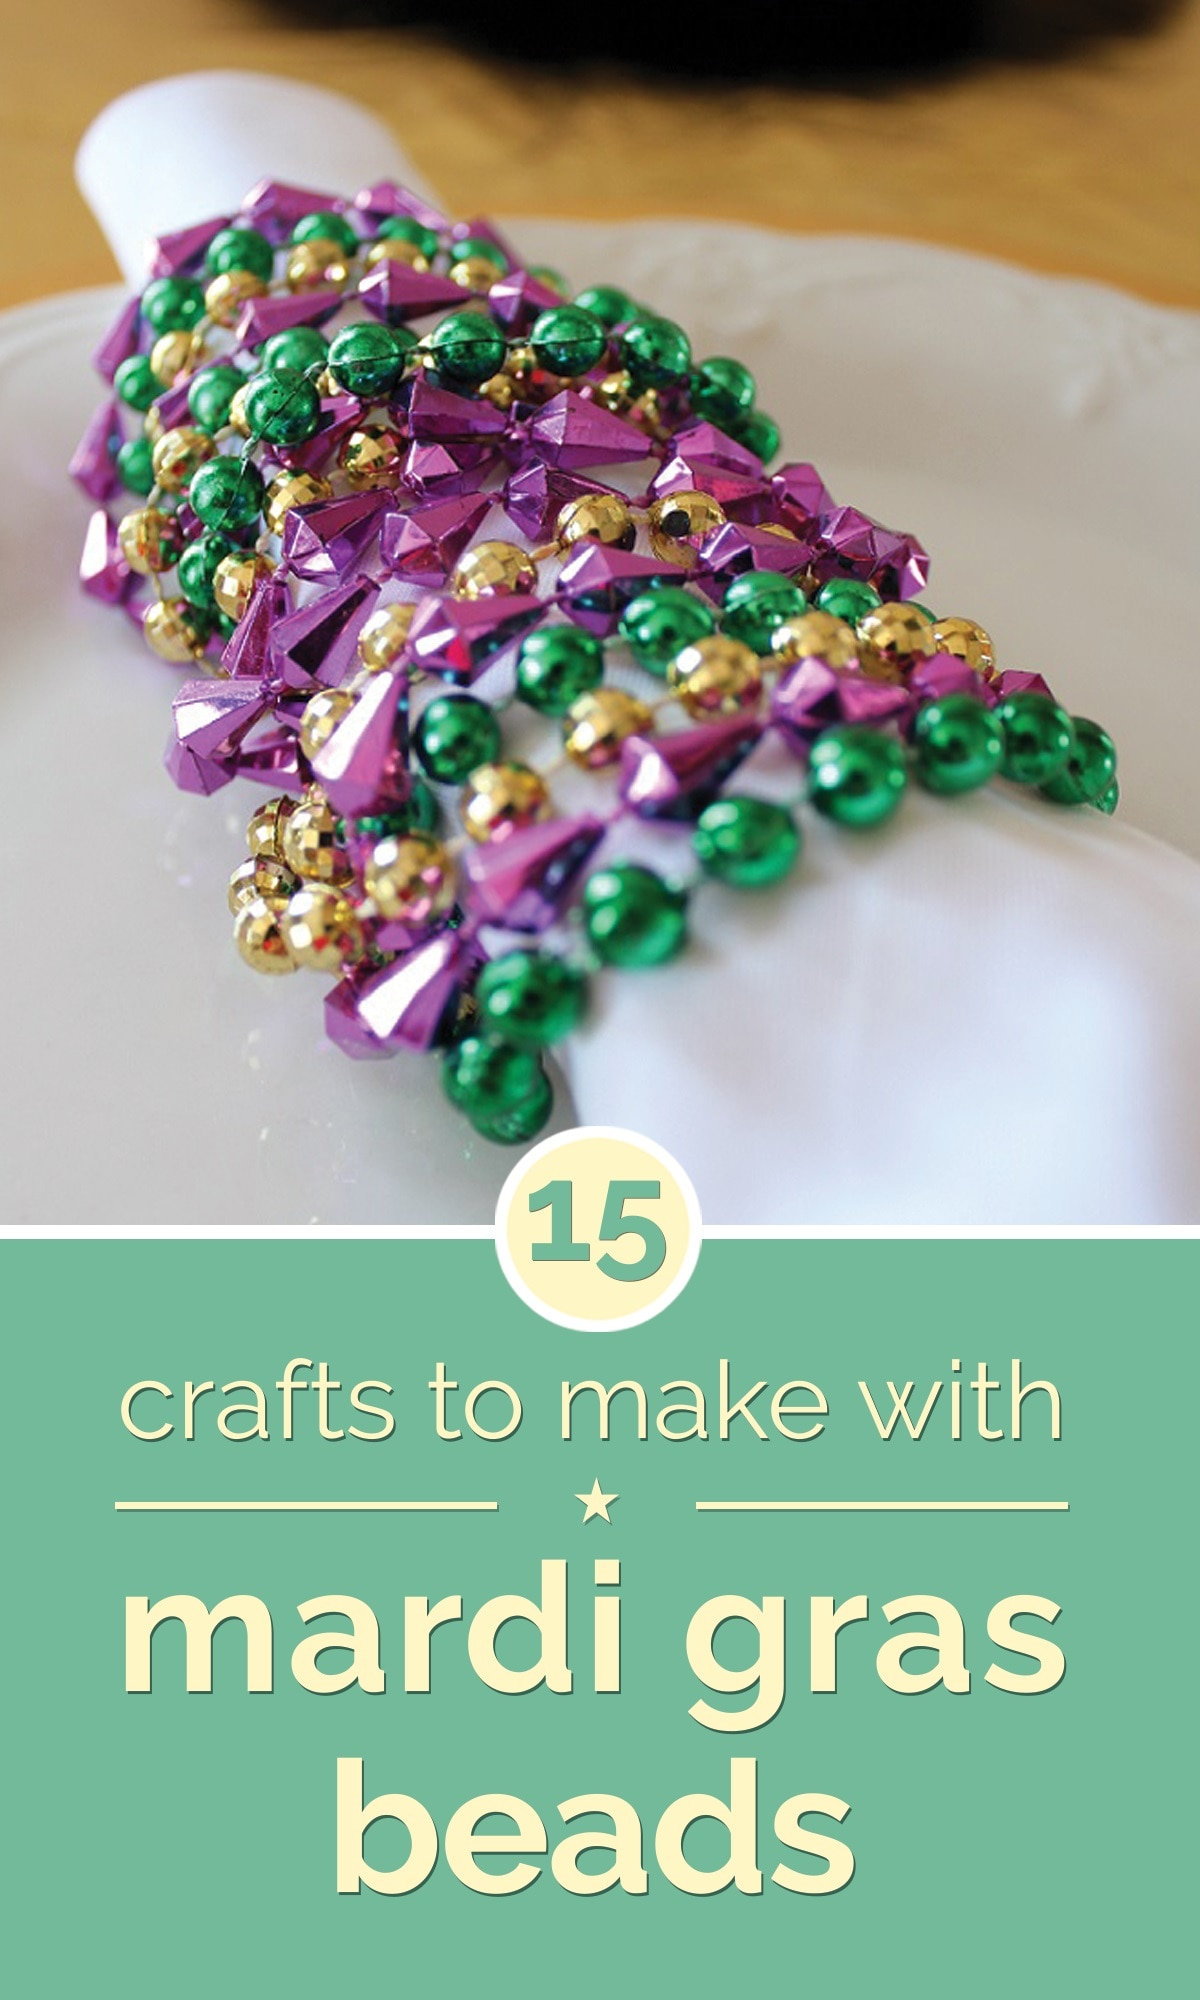 bead mardi carnival thegoodstuff beads make diy gras crafts with to